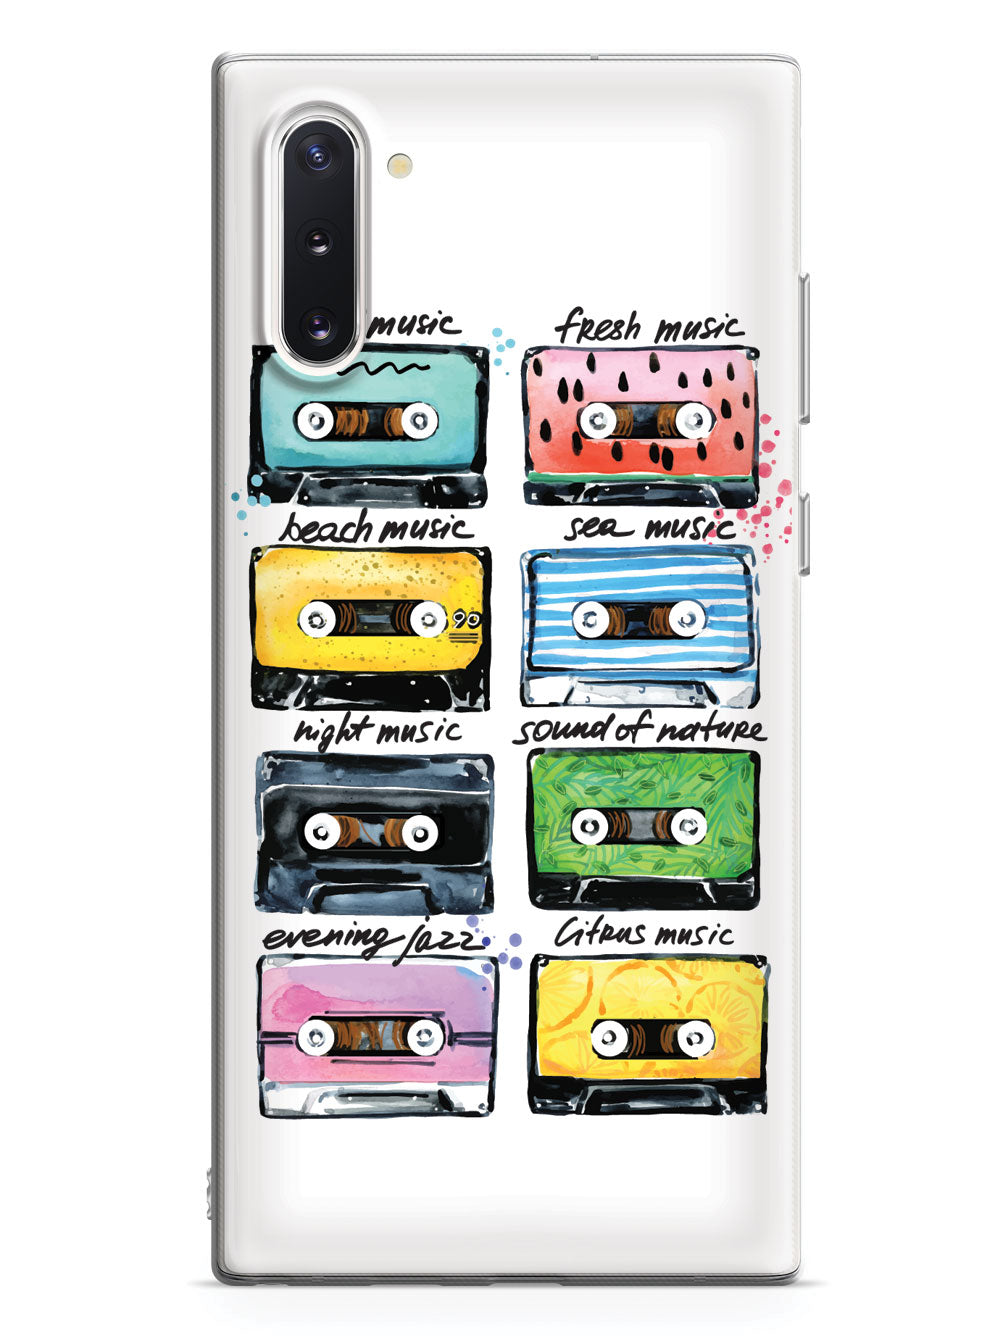 Cassette Tapes - Mood Music - White Case